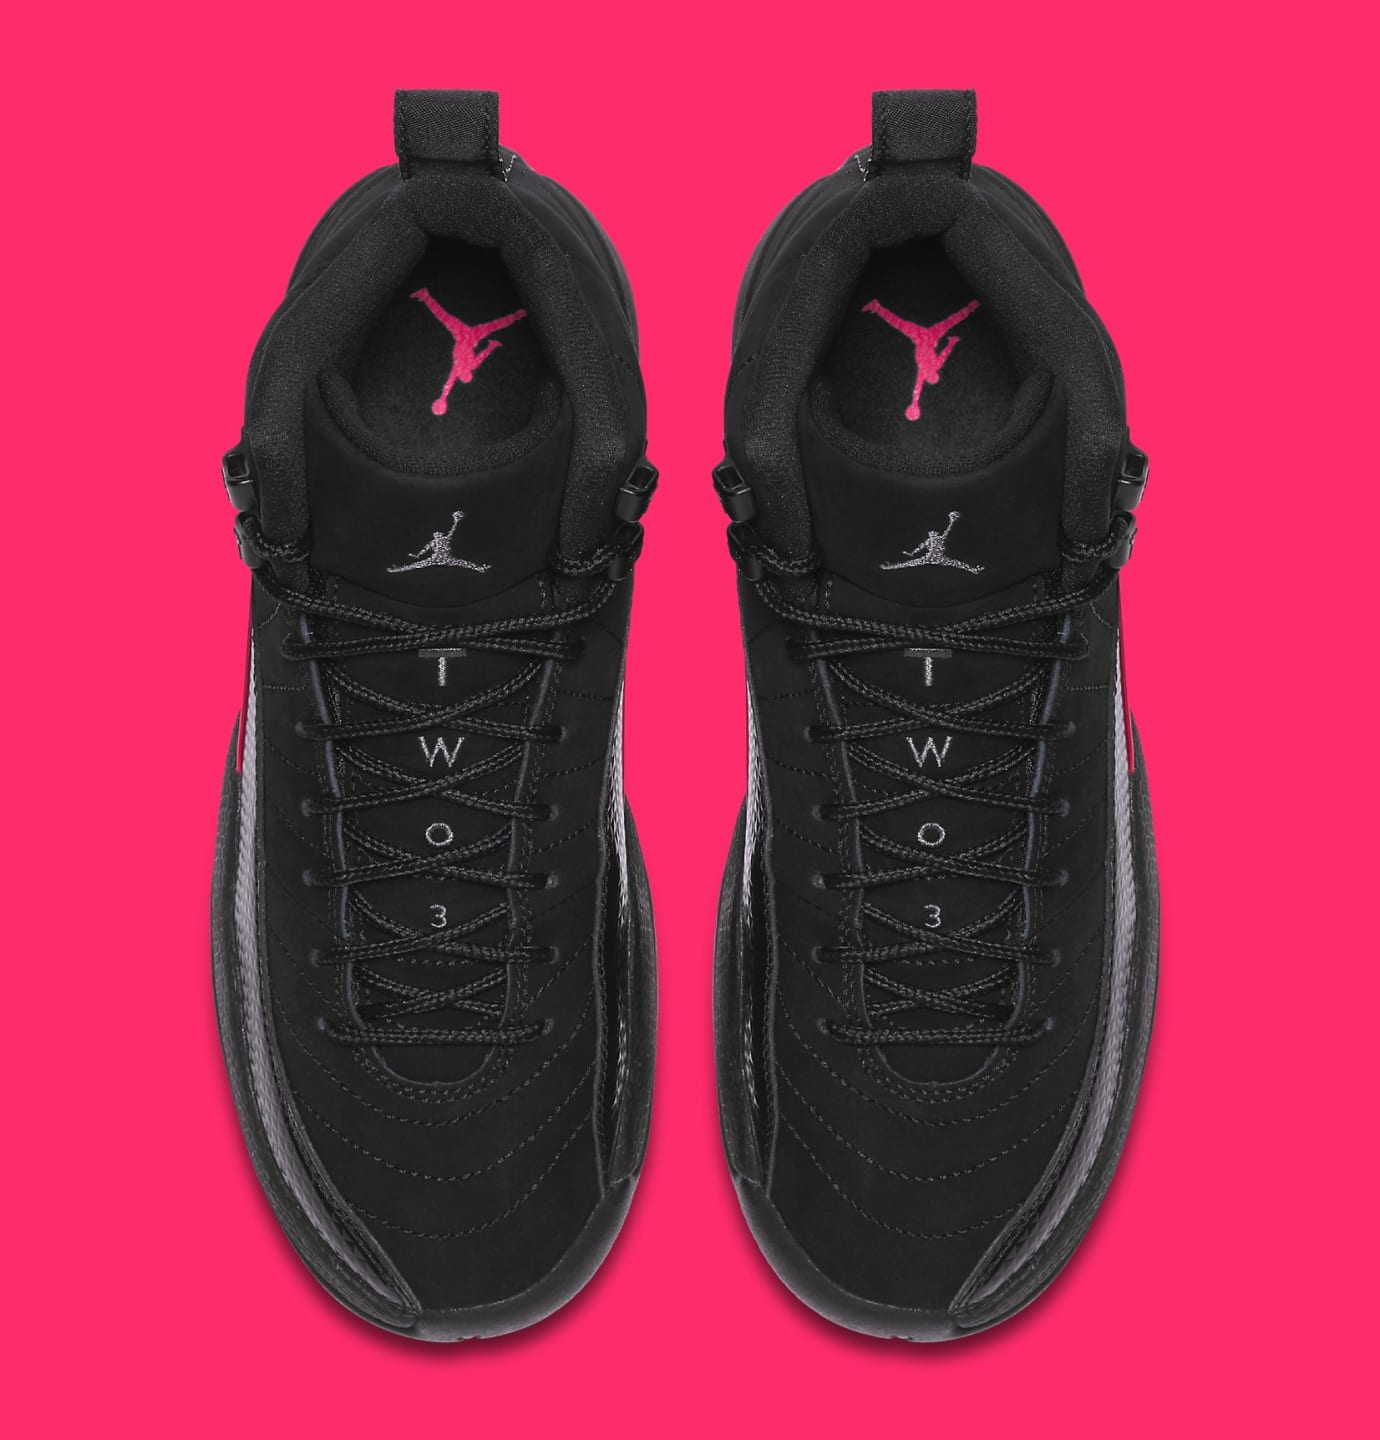 a598d25c9ea Air Jordan 12 Retro GG 'Black/Dark Grey-Rush Pink' 510815-006 ...